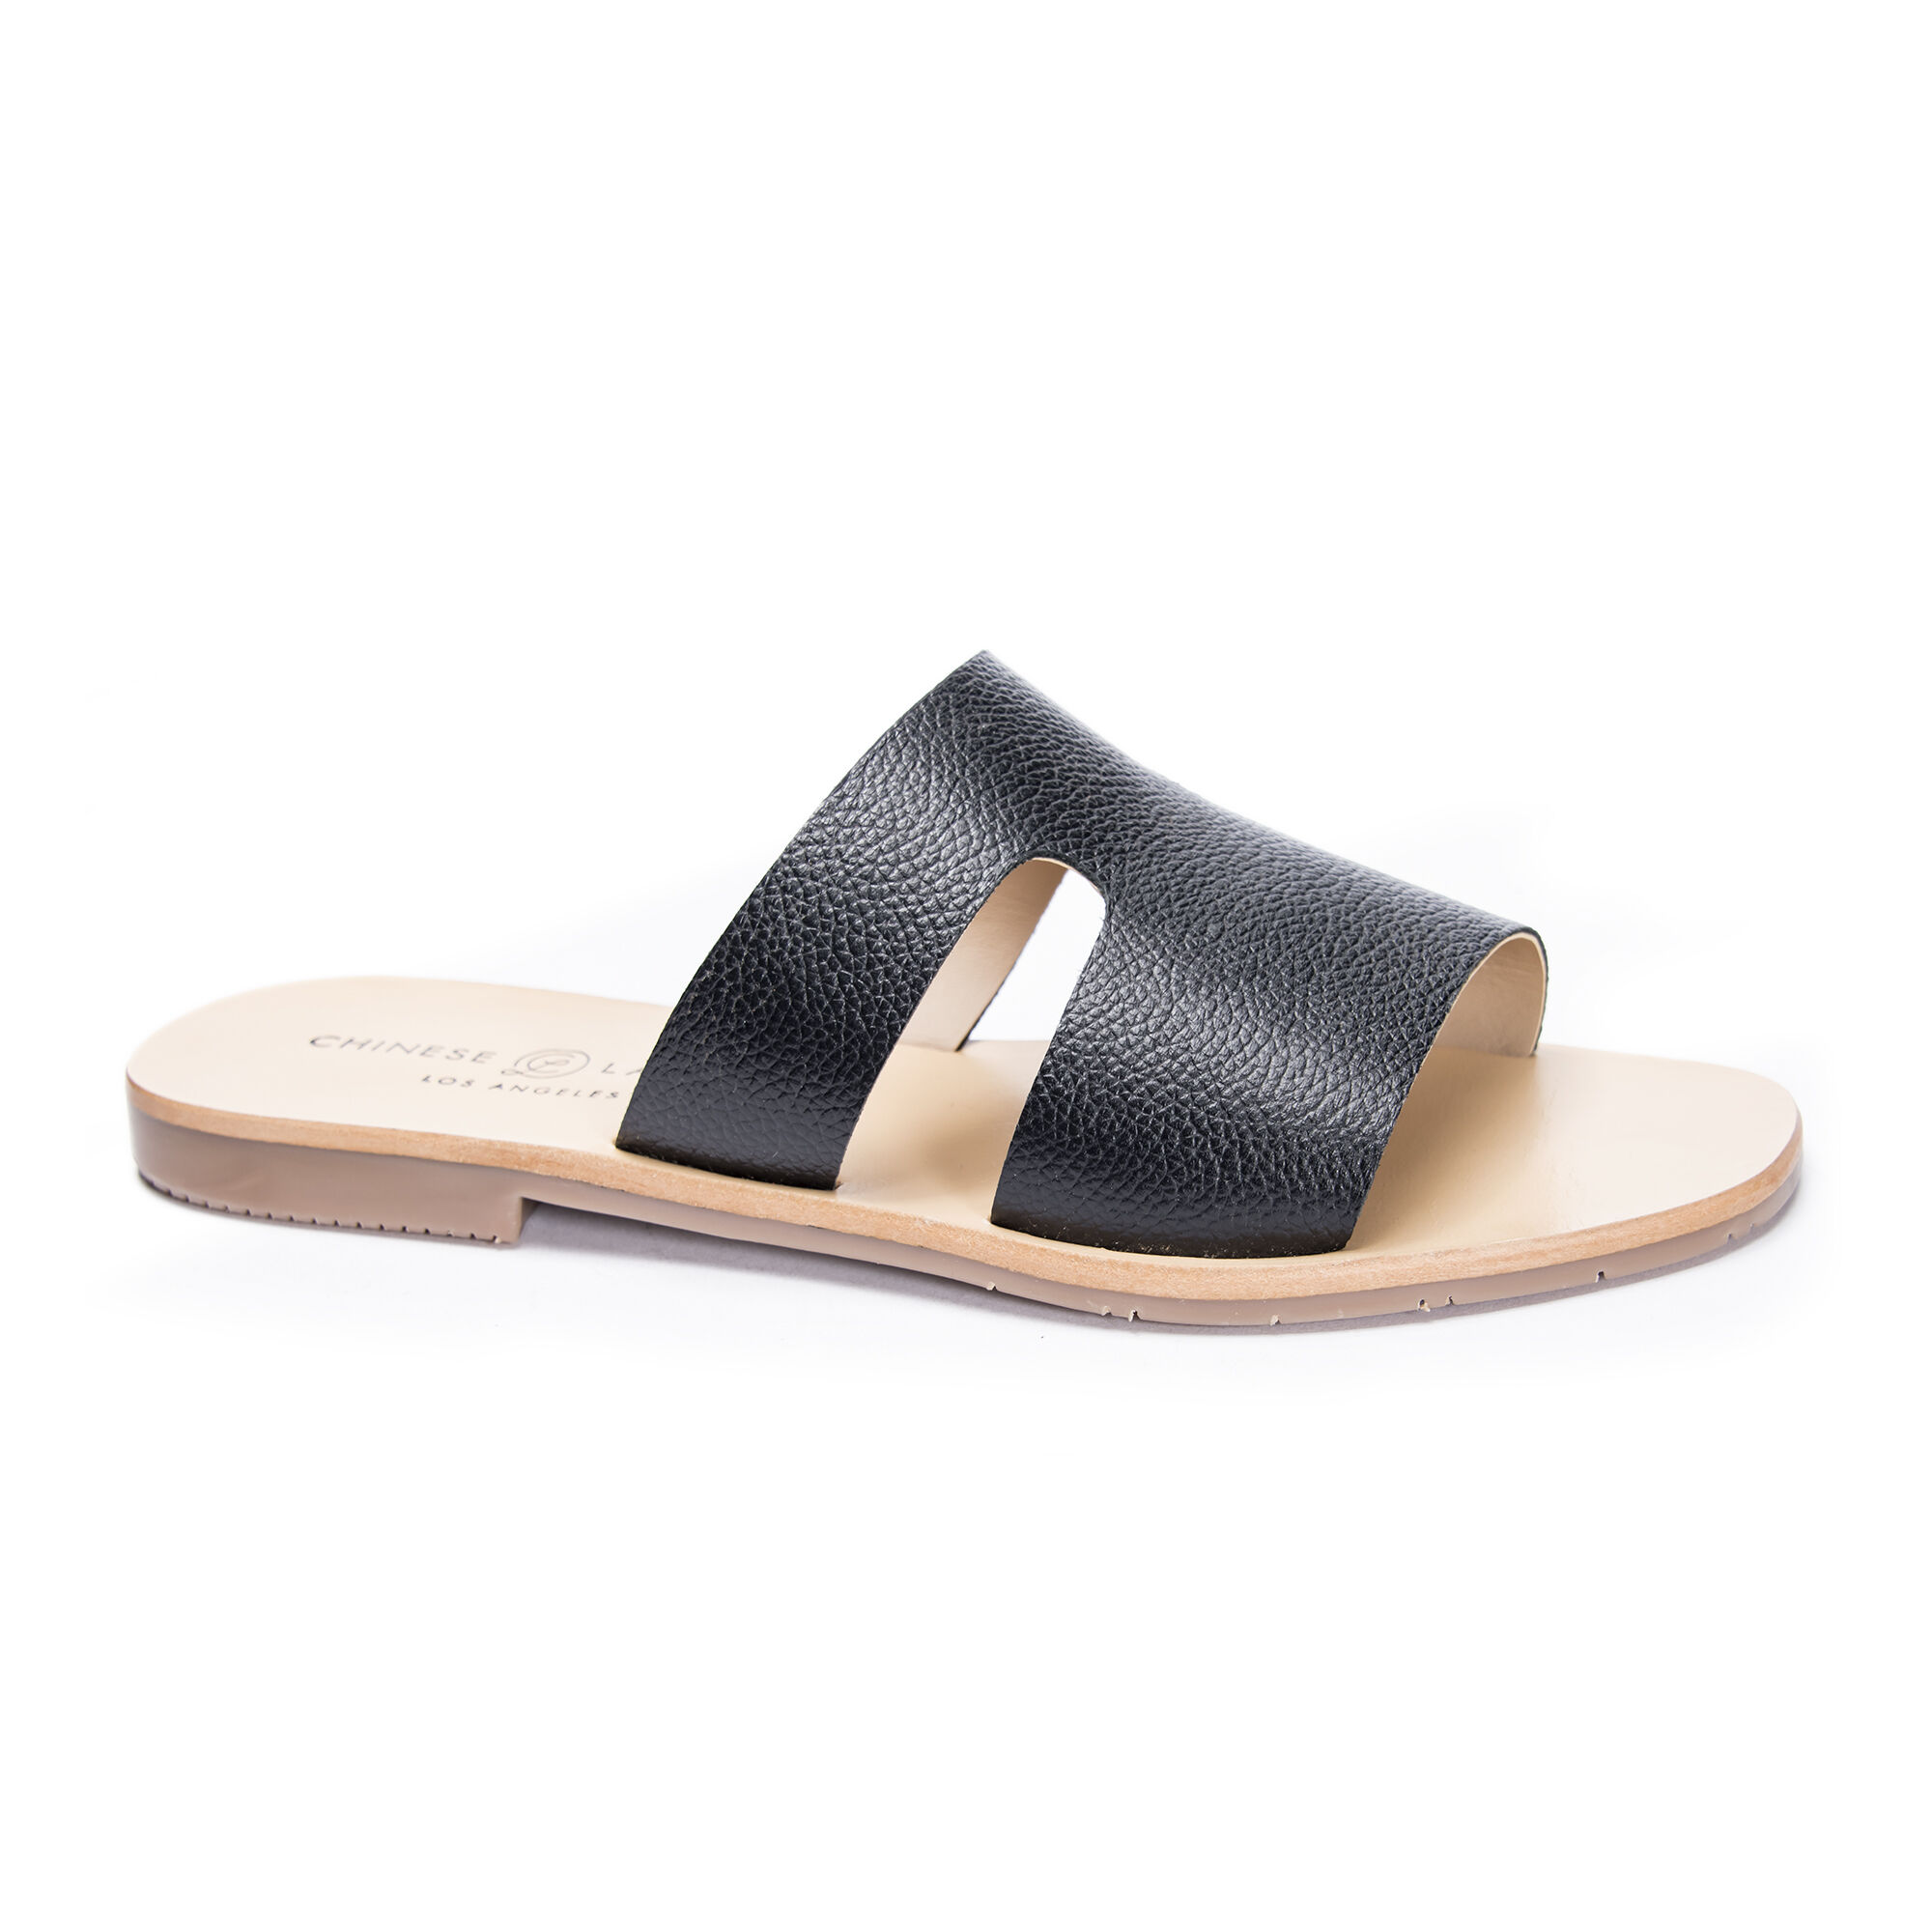 Women's Laundry SandalsChinese Mannie Slide Leather H2IWED9